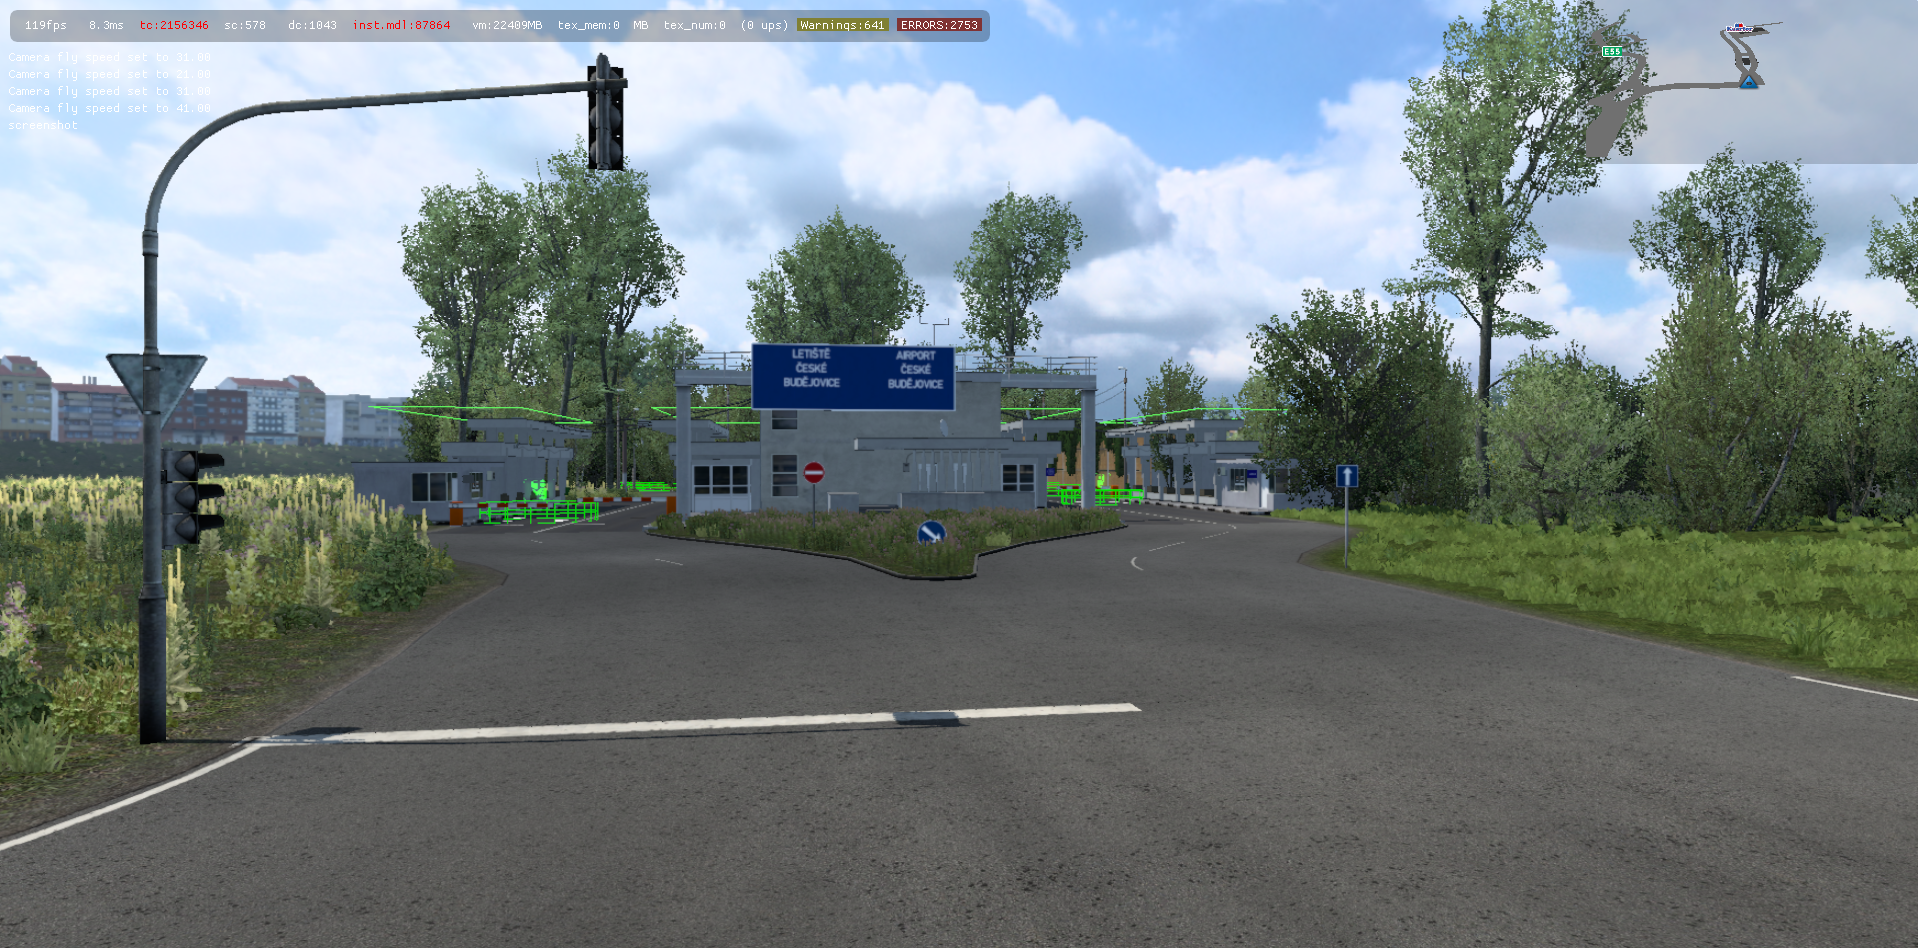 ets2_20210821_205606_00.png